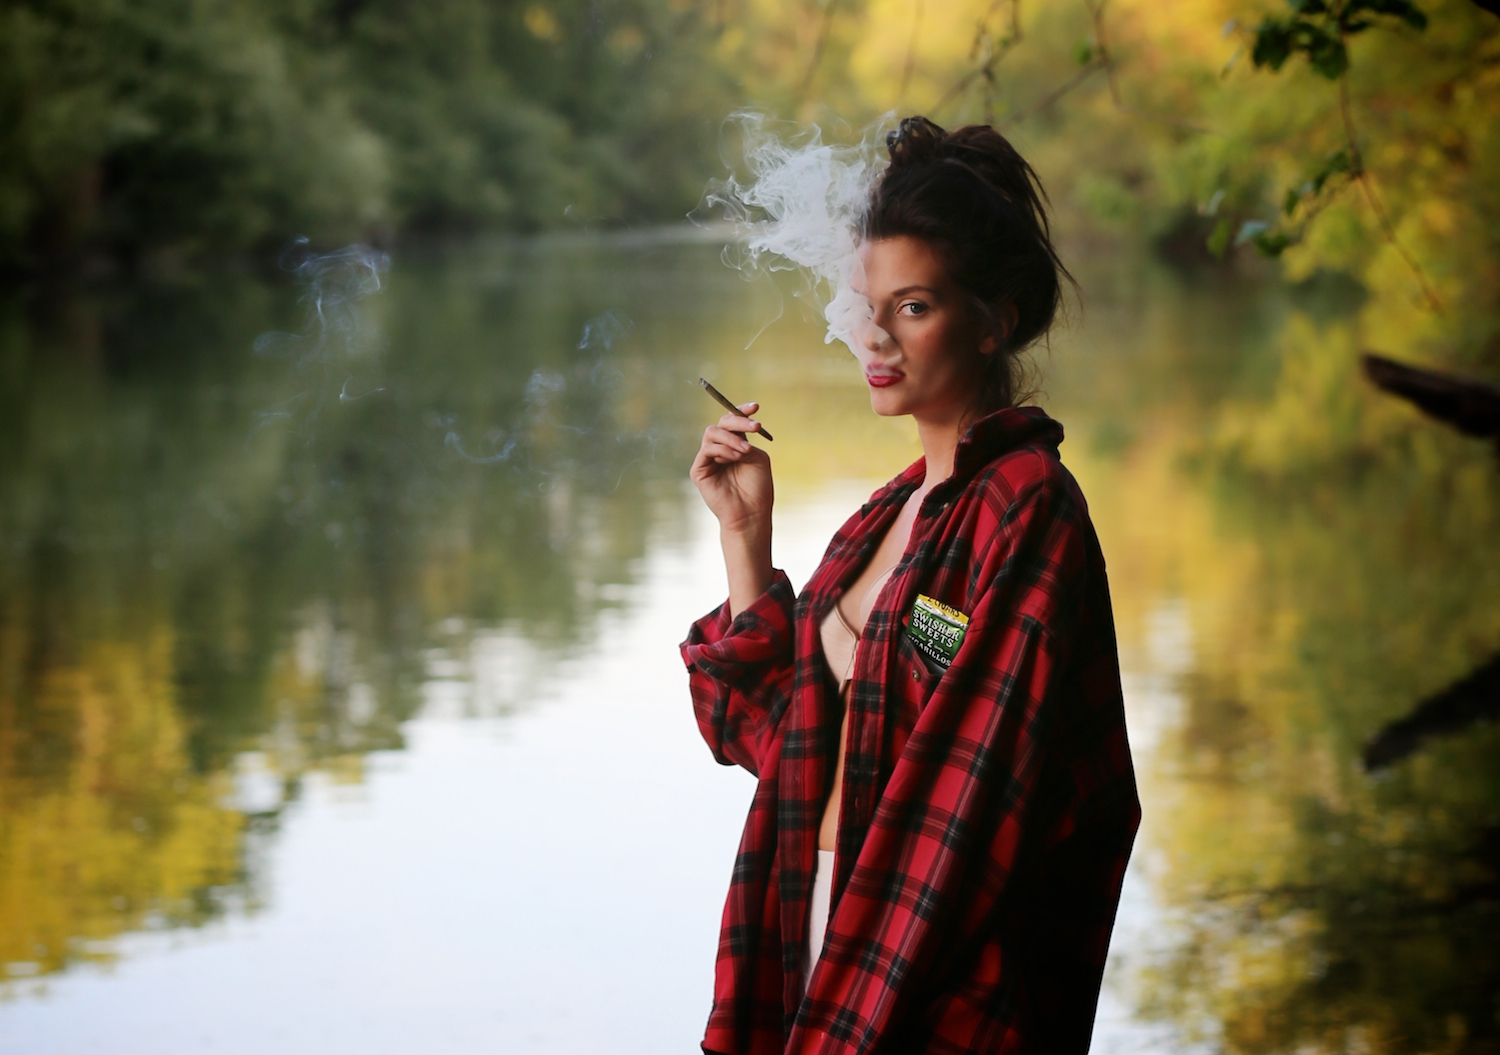 russian river, mendocino, travel blog, heather van gala, fashion editorial fall,, model, 80s fashion, smoking, photographer